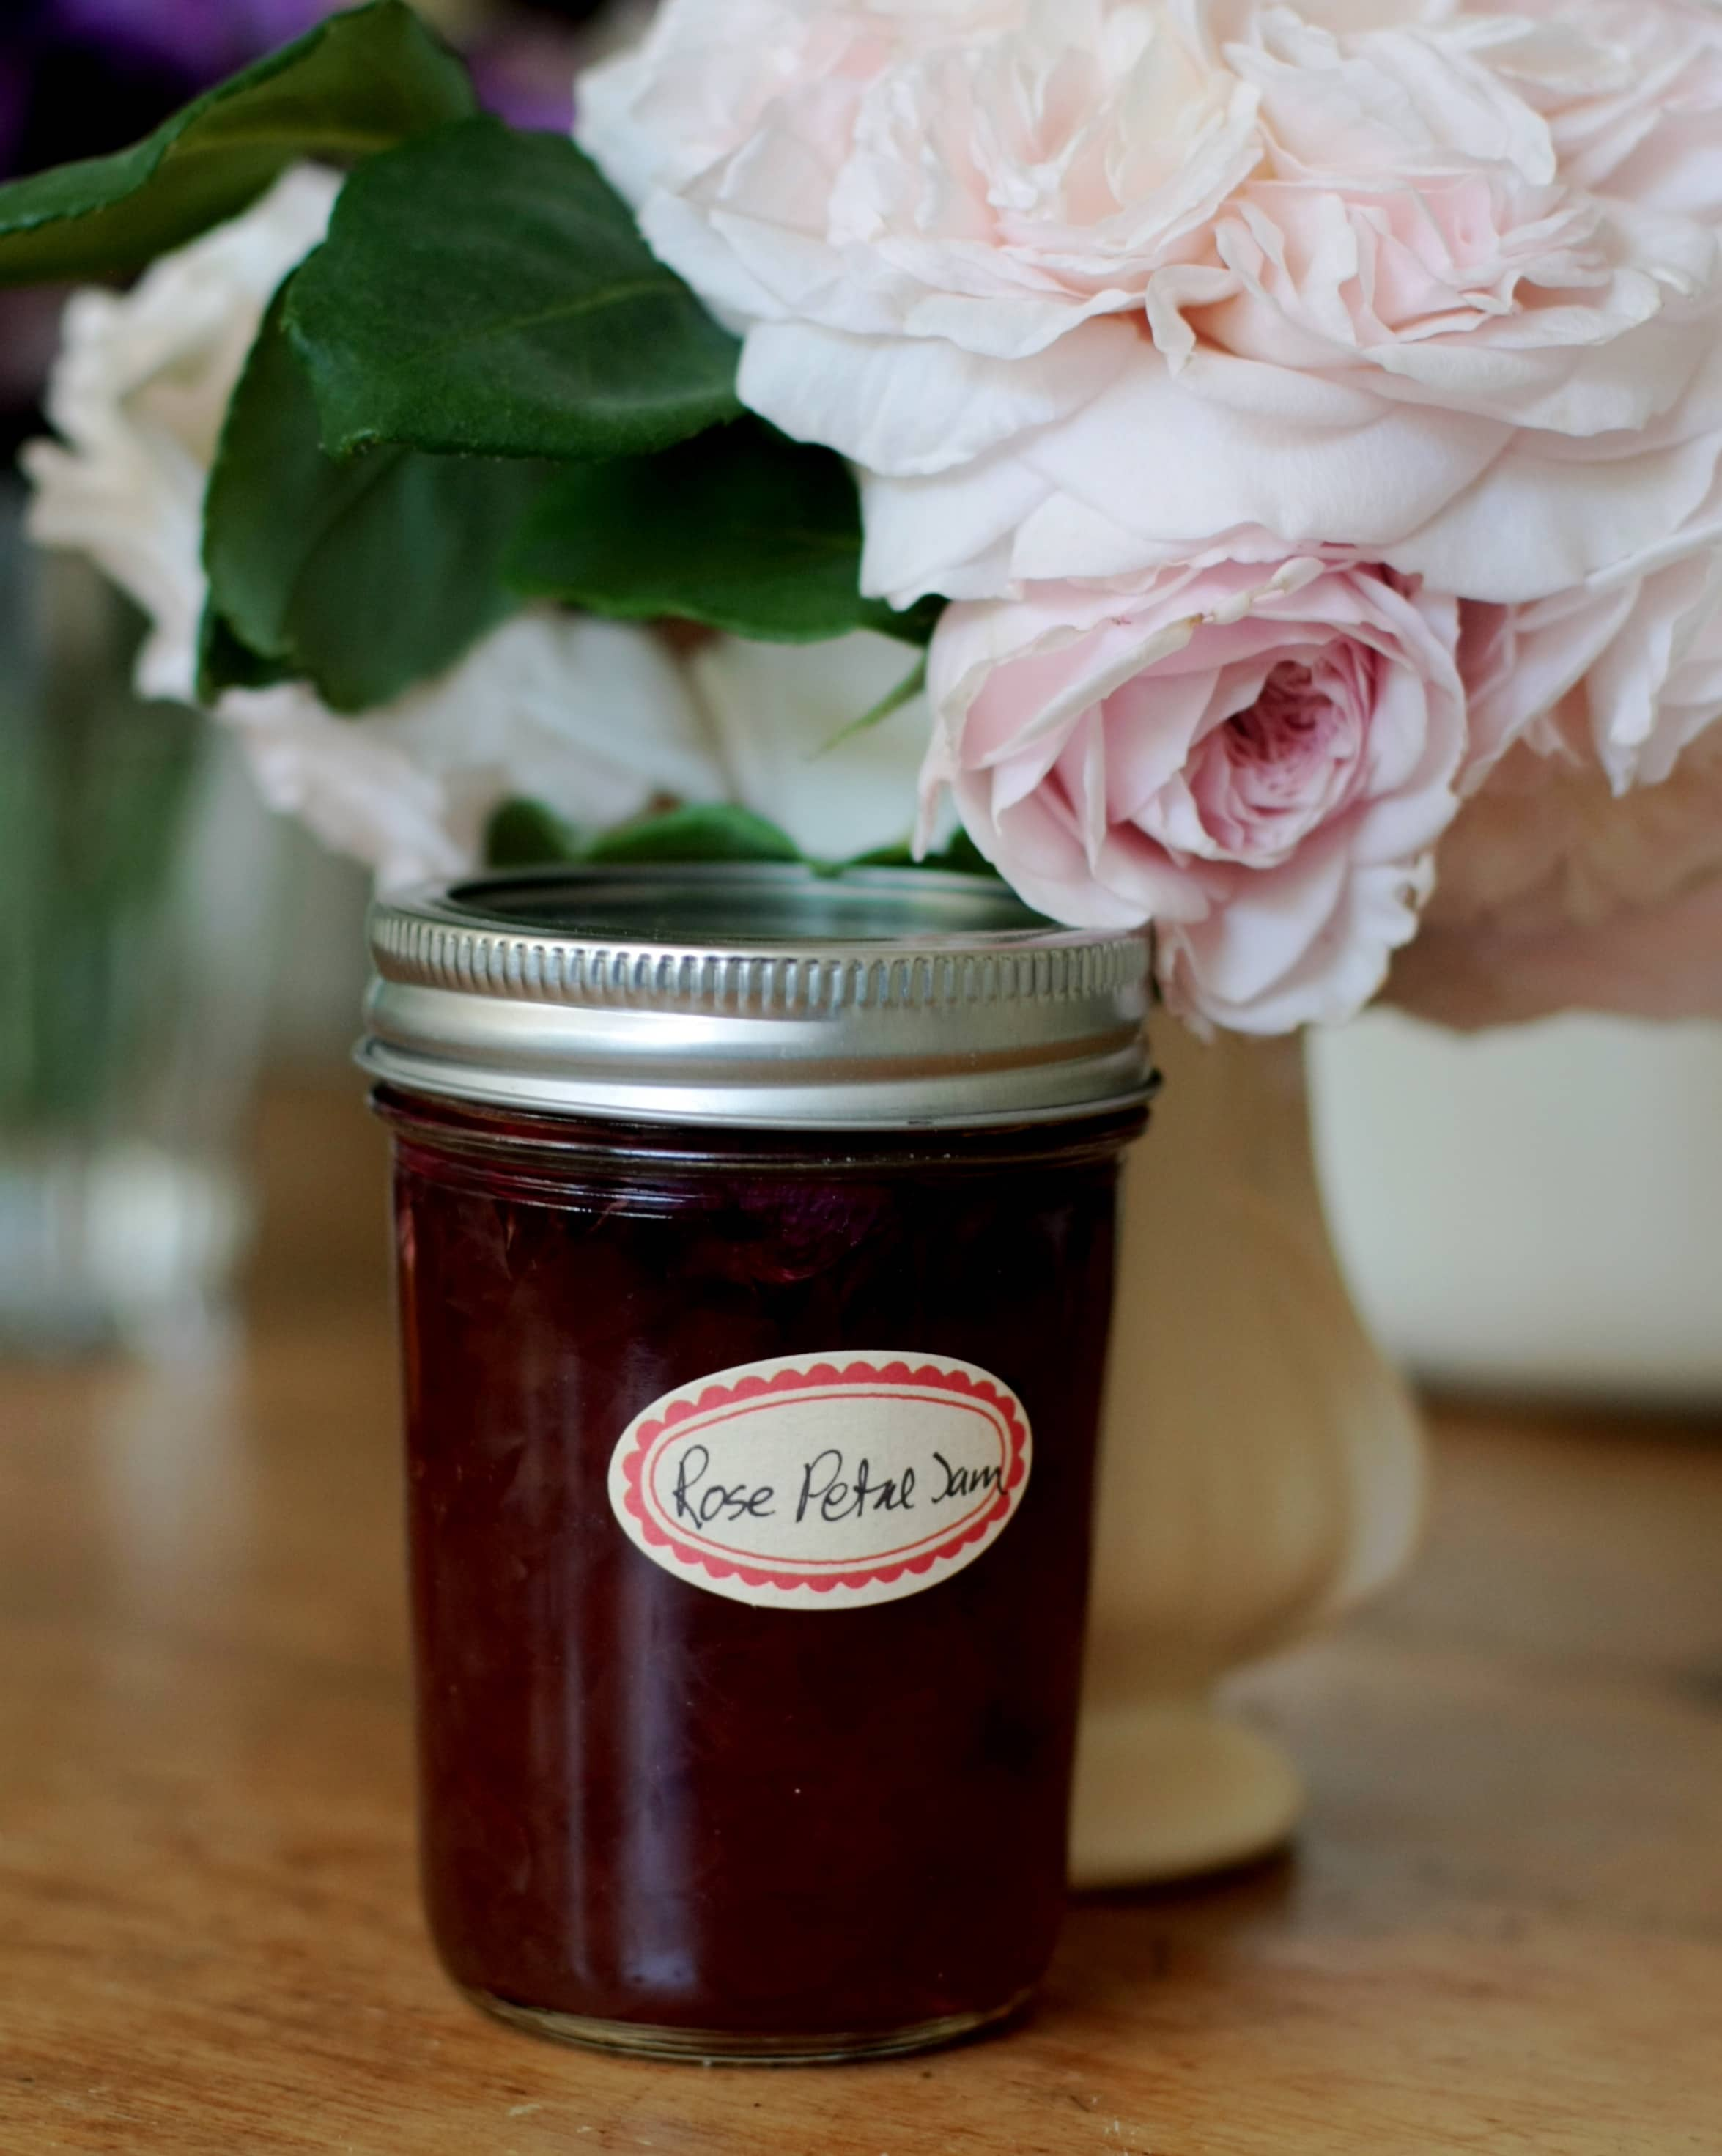 12 Ways to Use Rose Petals in the Kitchen